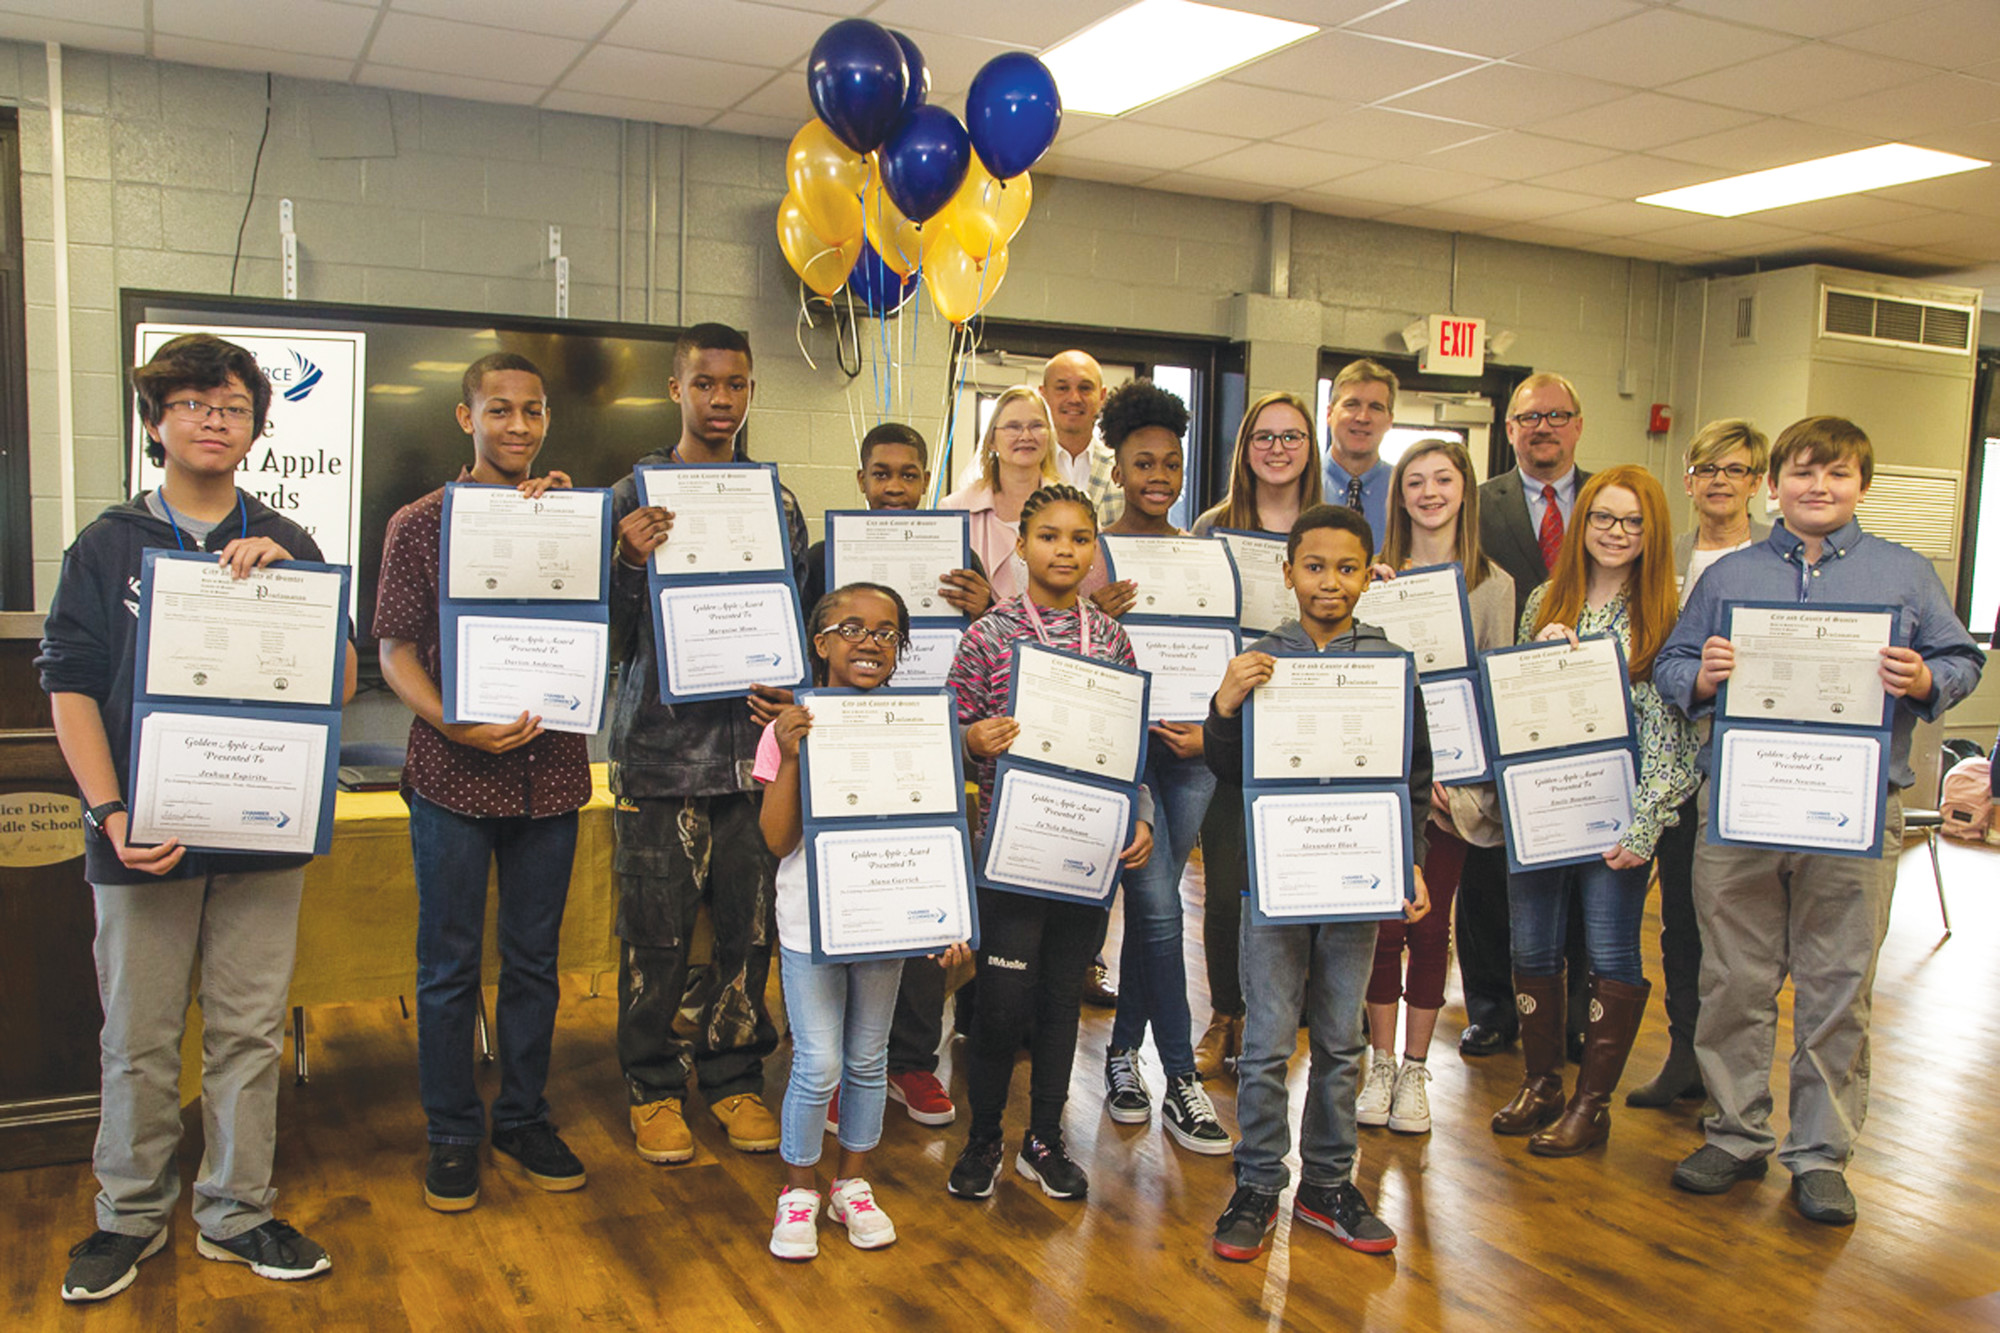 PHOTO PROVIDEDGolden Apple Award winners at Alice Drive Middle School